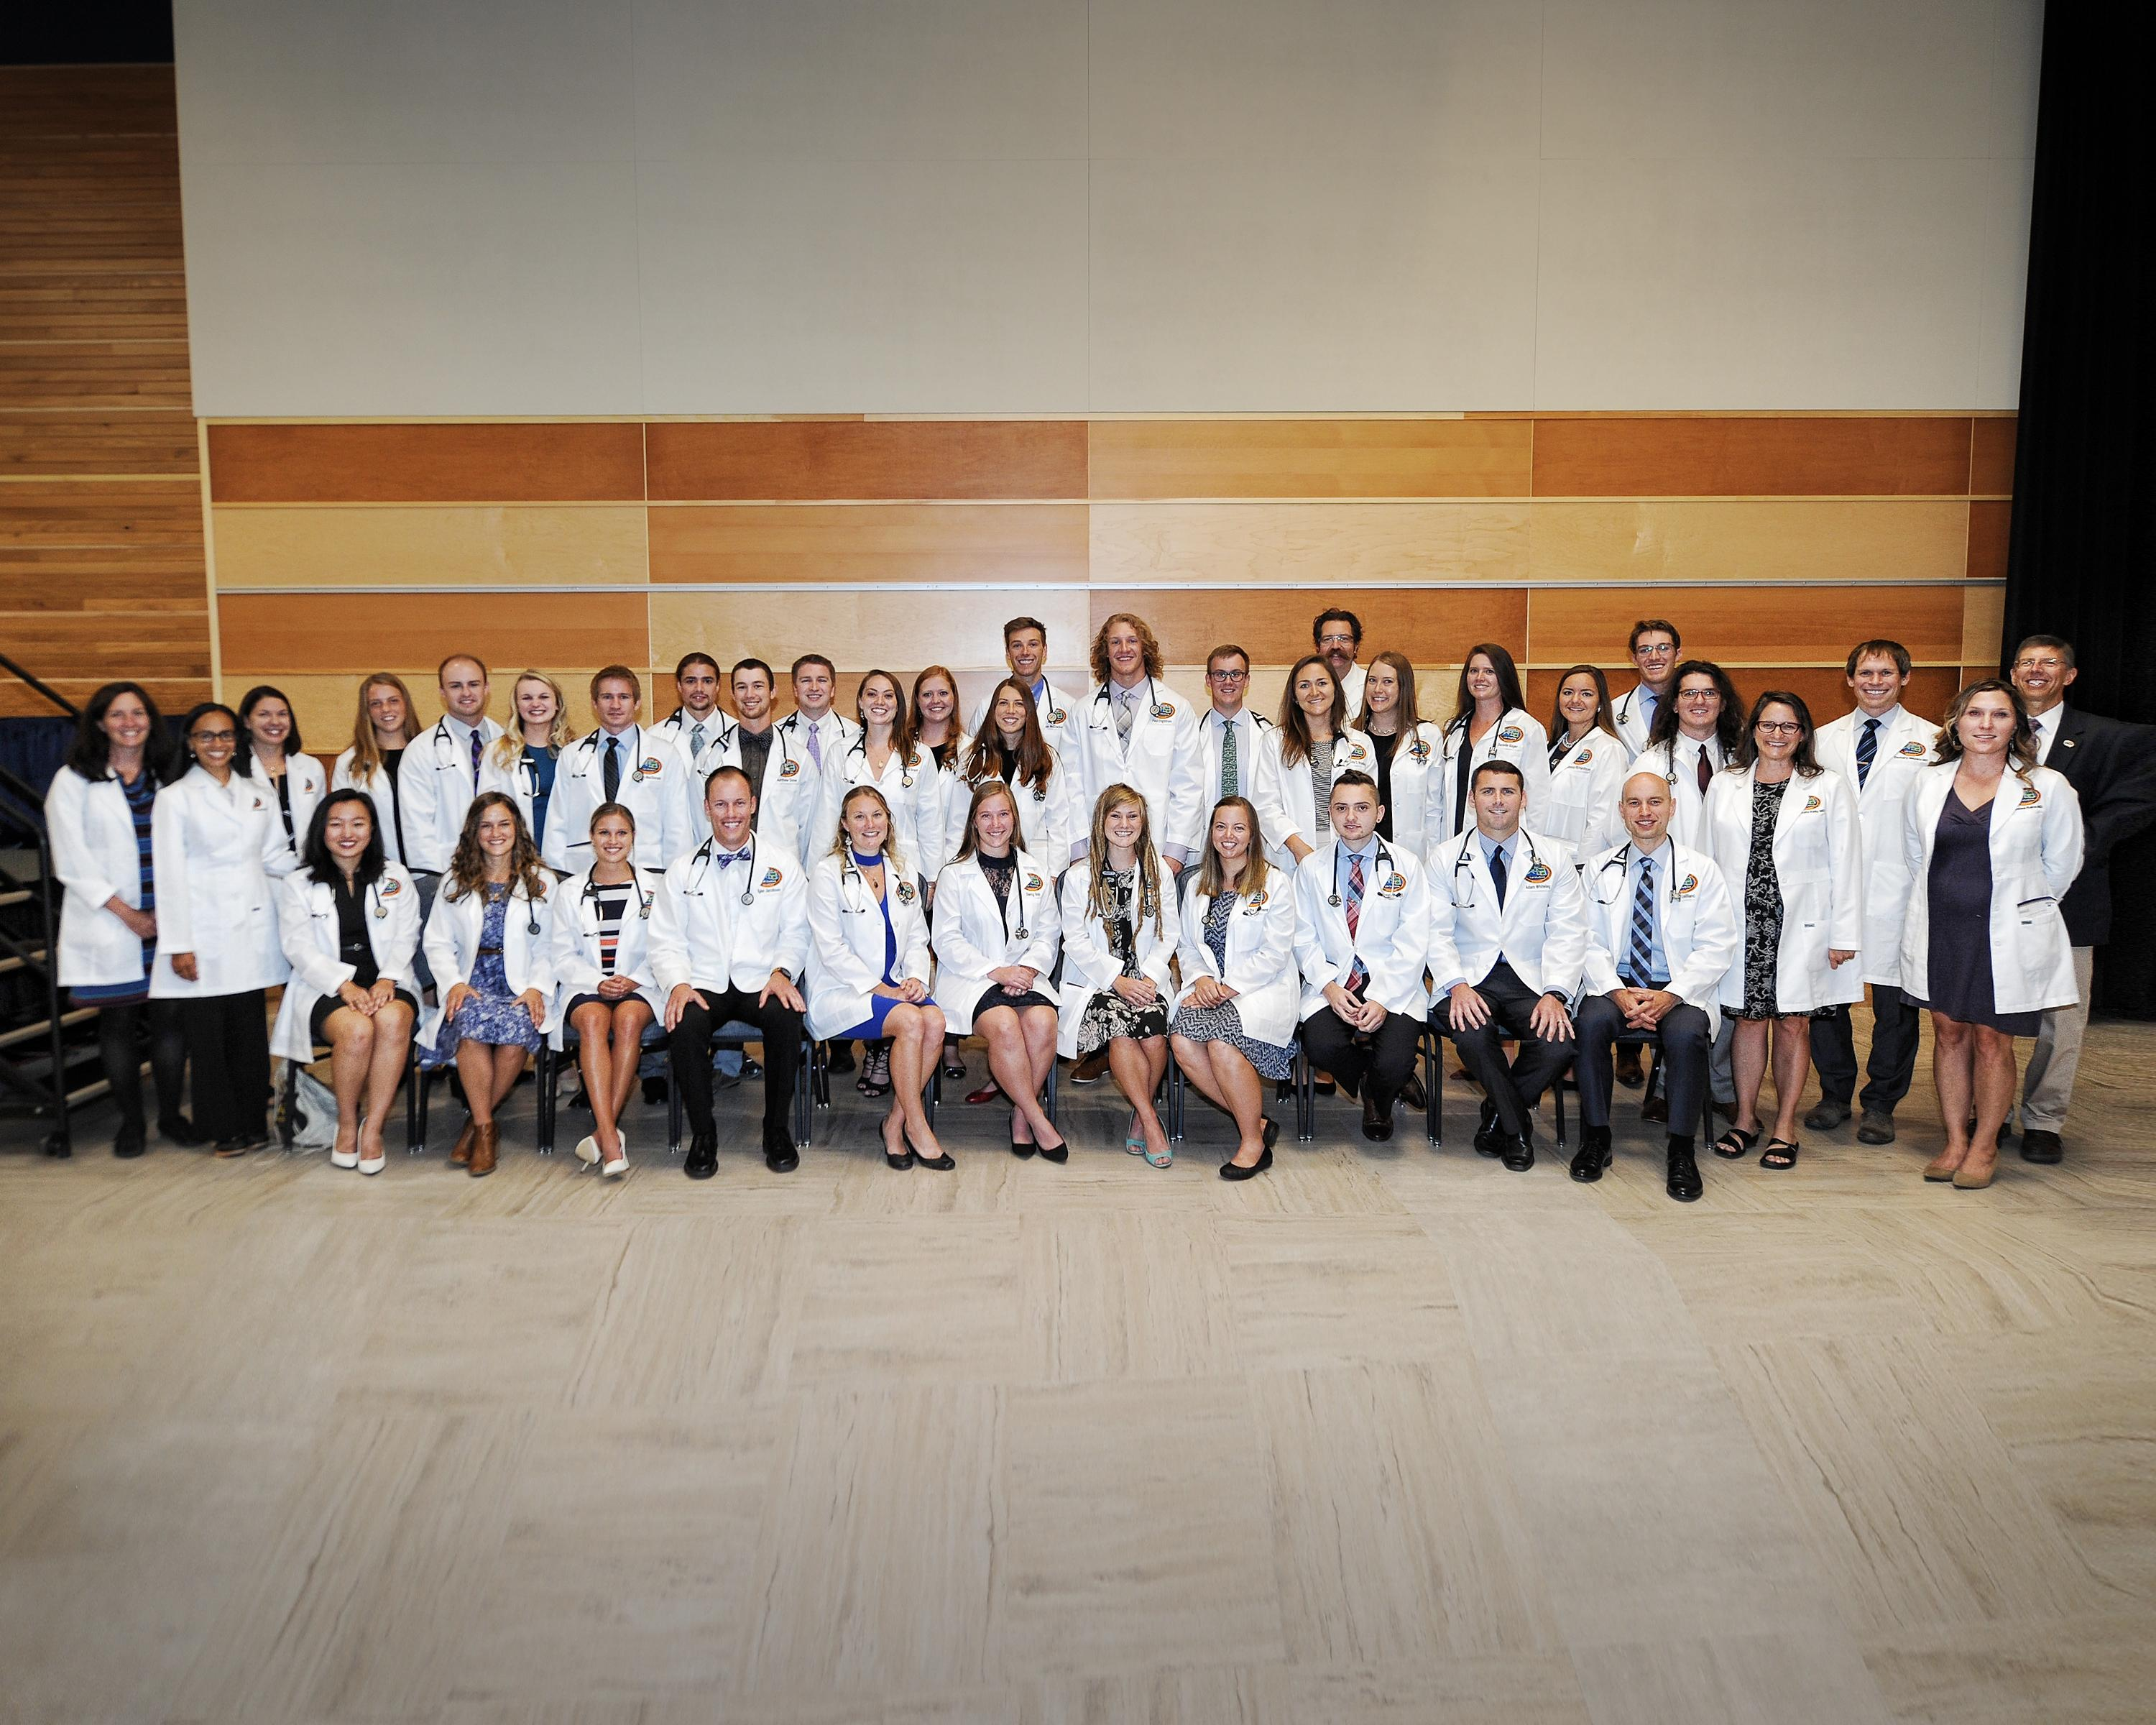 The E'17 Students were given White Coats to mark their transition into the Clinic on Friday, September 1st 2017